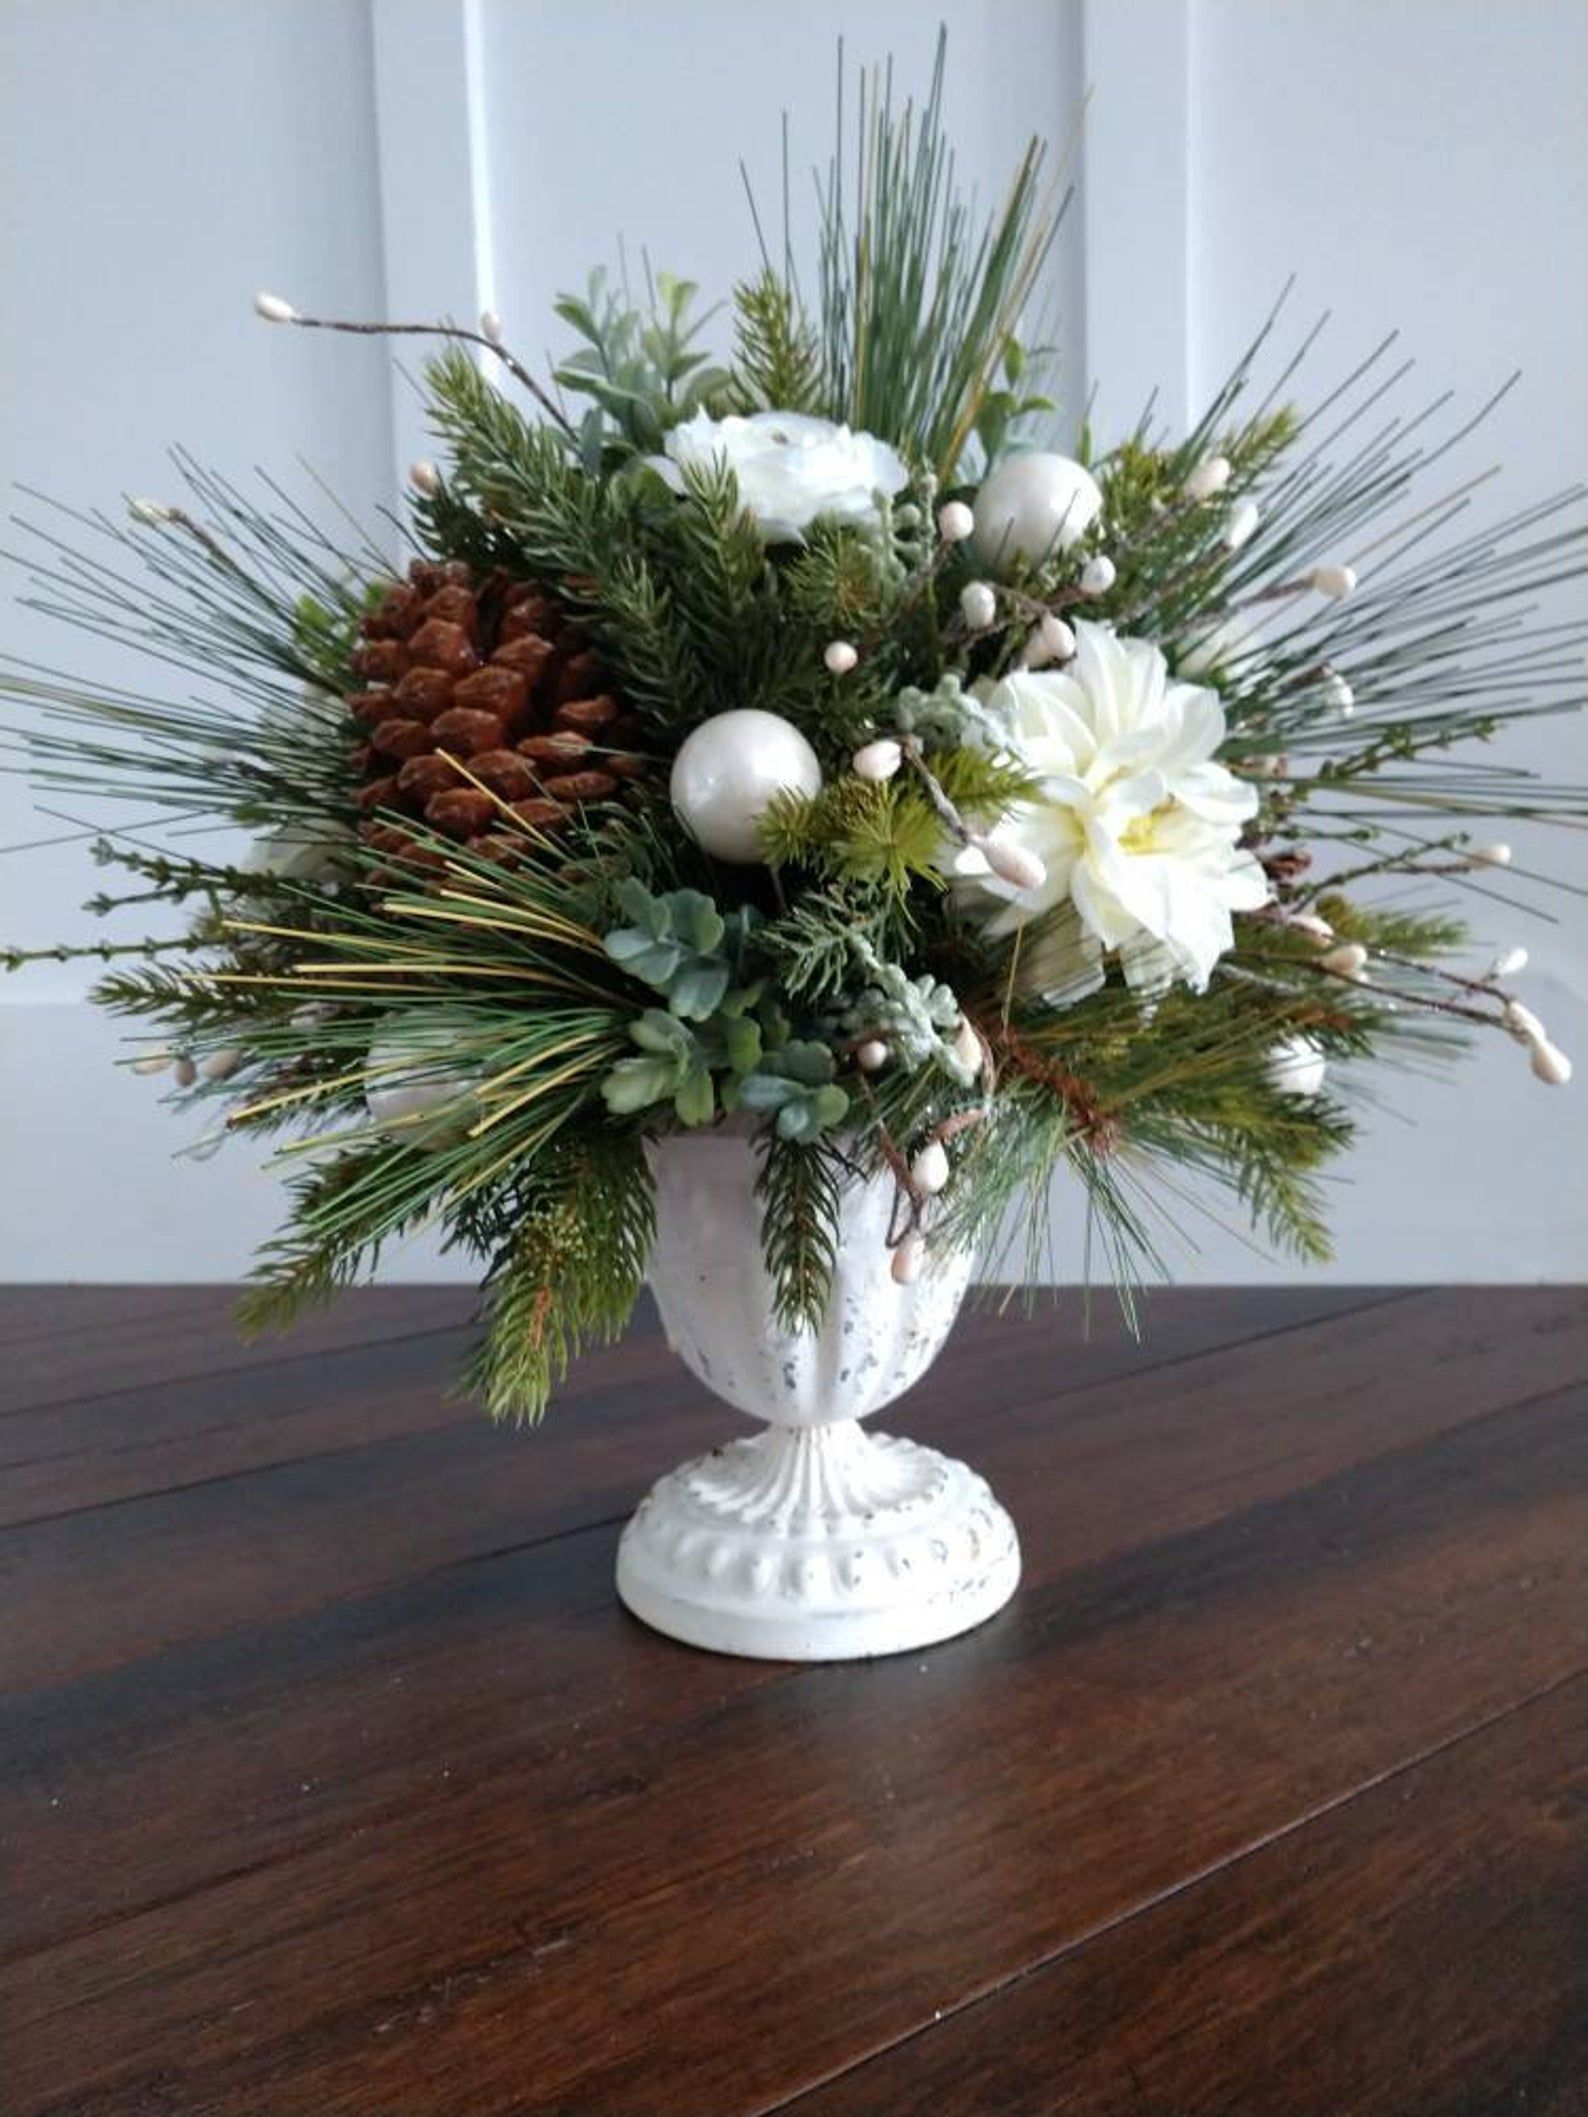 Large Farmhouse Christmas Floral Arrangement Winter Etsy Christmas Floral Arrangements Christmas Arrangements Christmas Floral